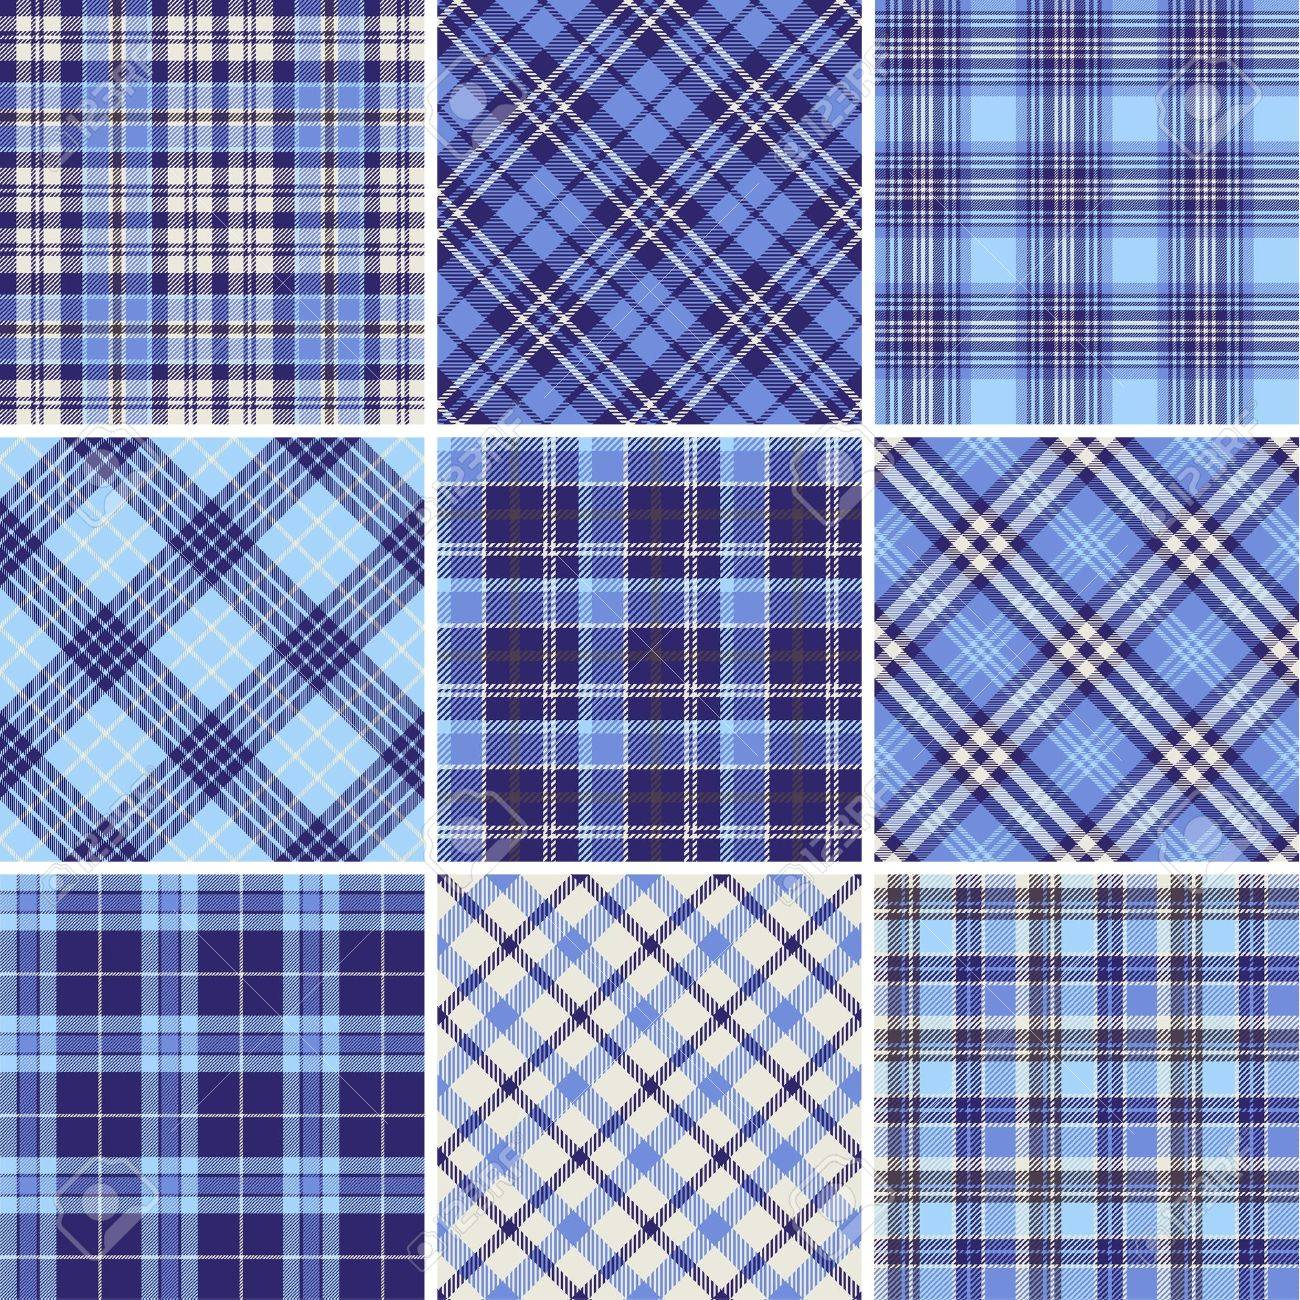 Tartan Pattern set of seamless tartan patterns royalty free cliparts, vectors